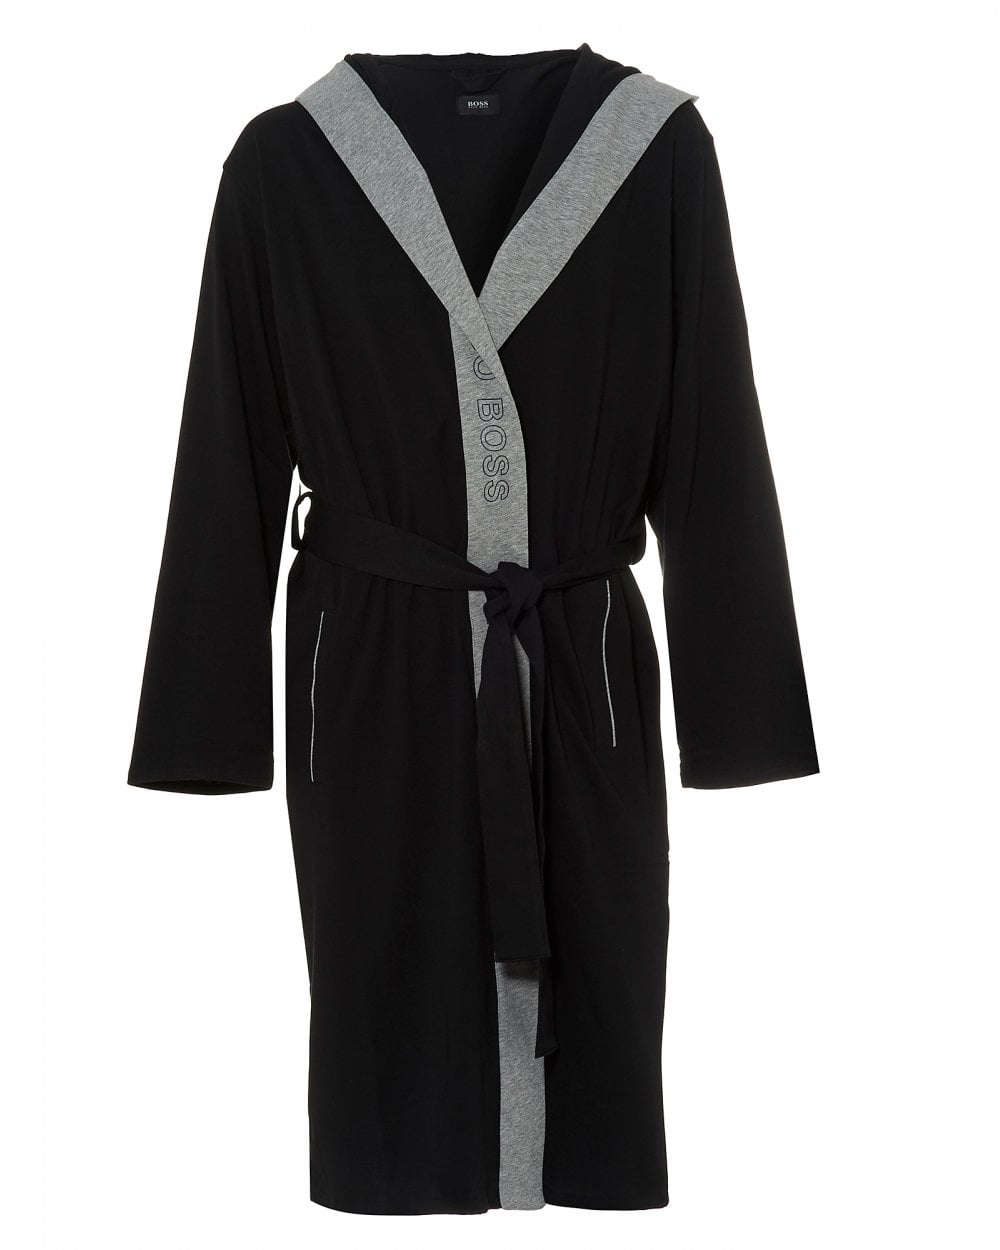 Men S Dressing Gowns Uk: BOSS Business Mens Identity Gown Black Hooded Dressing Gown